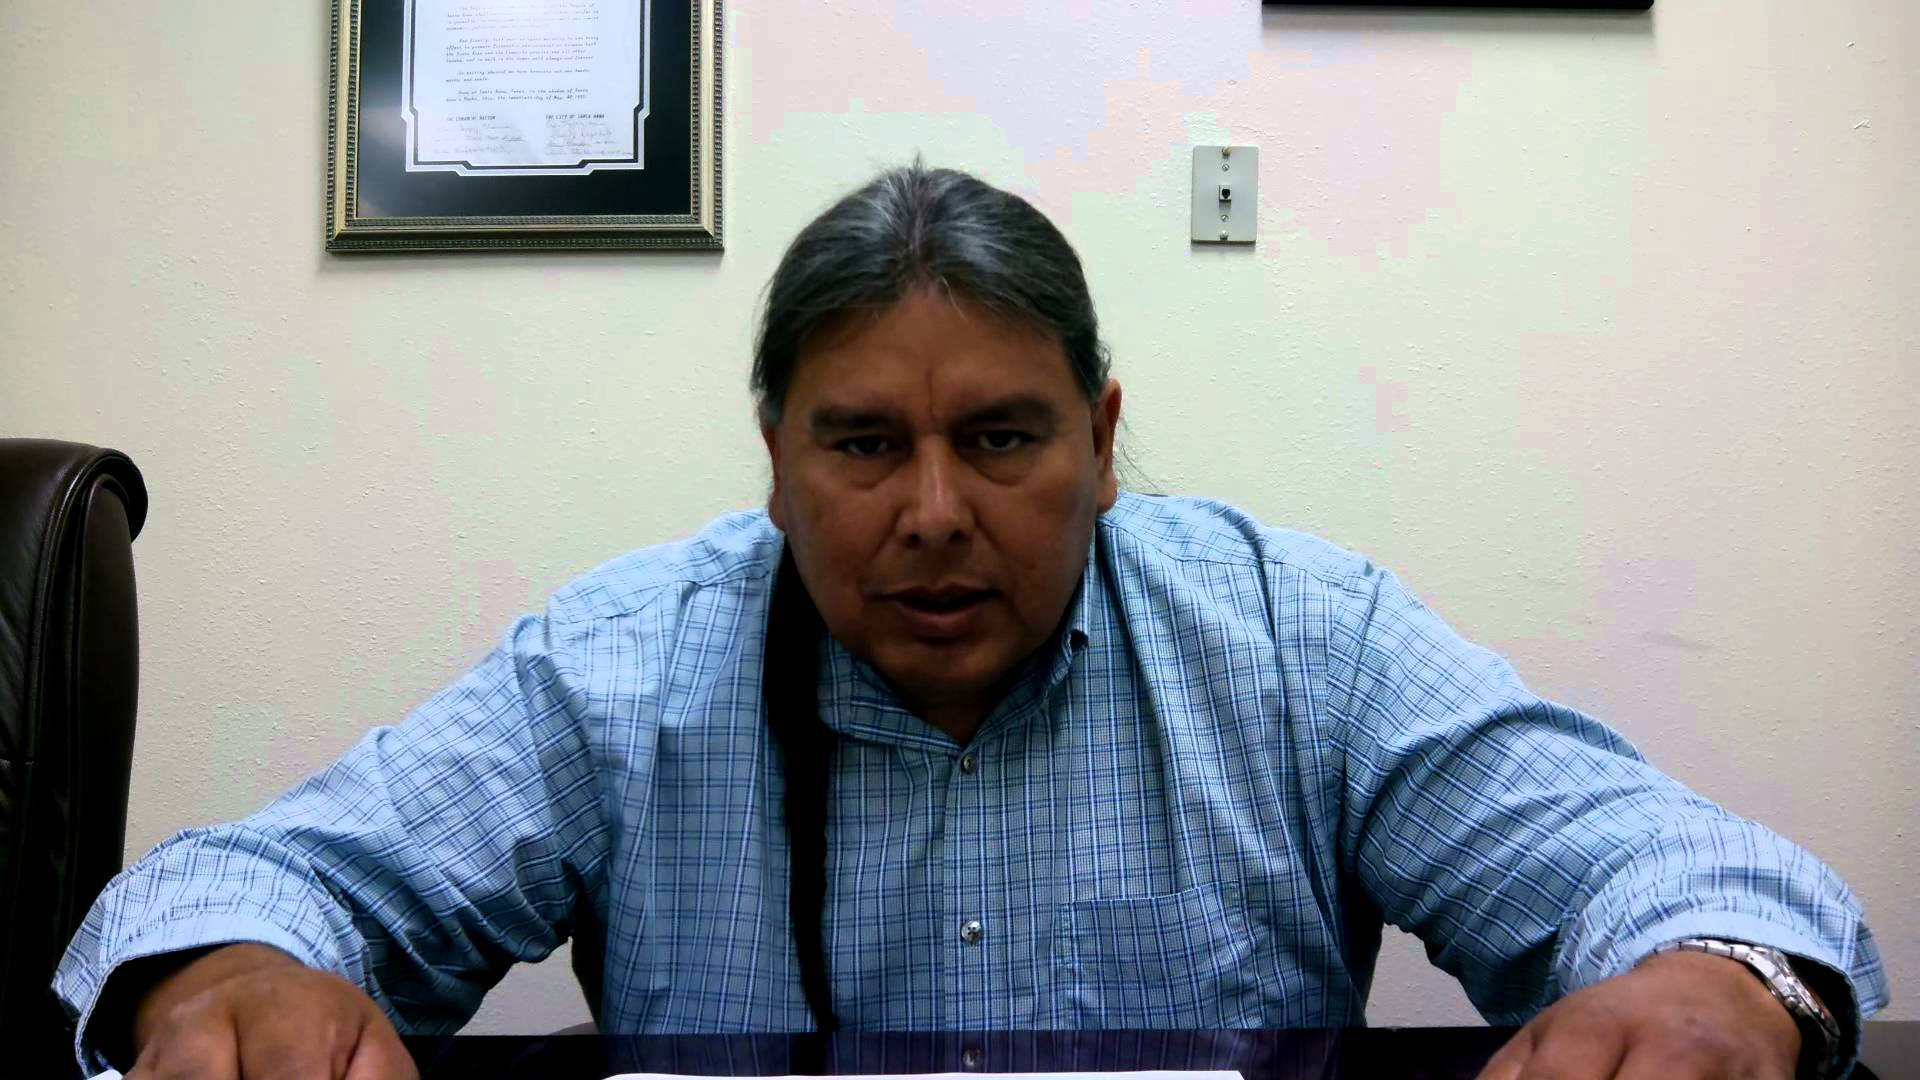 Comanche Nation schedules runoff vote over candidate's objection